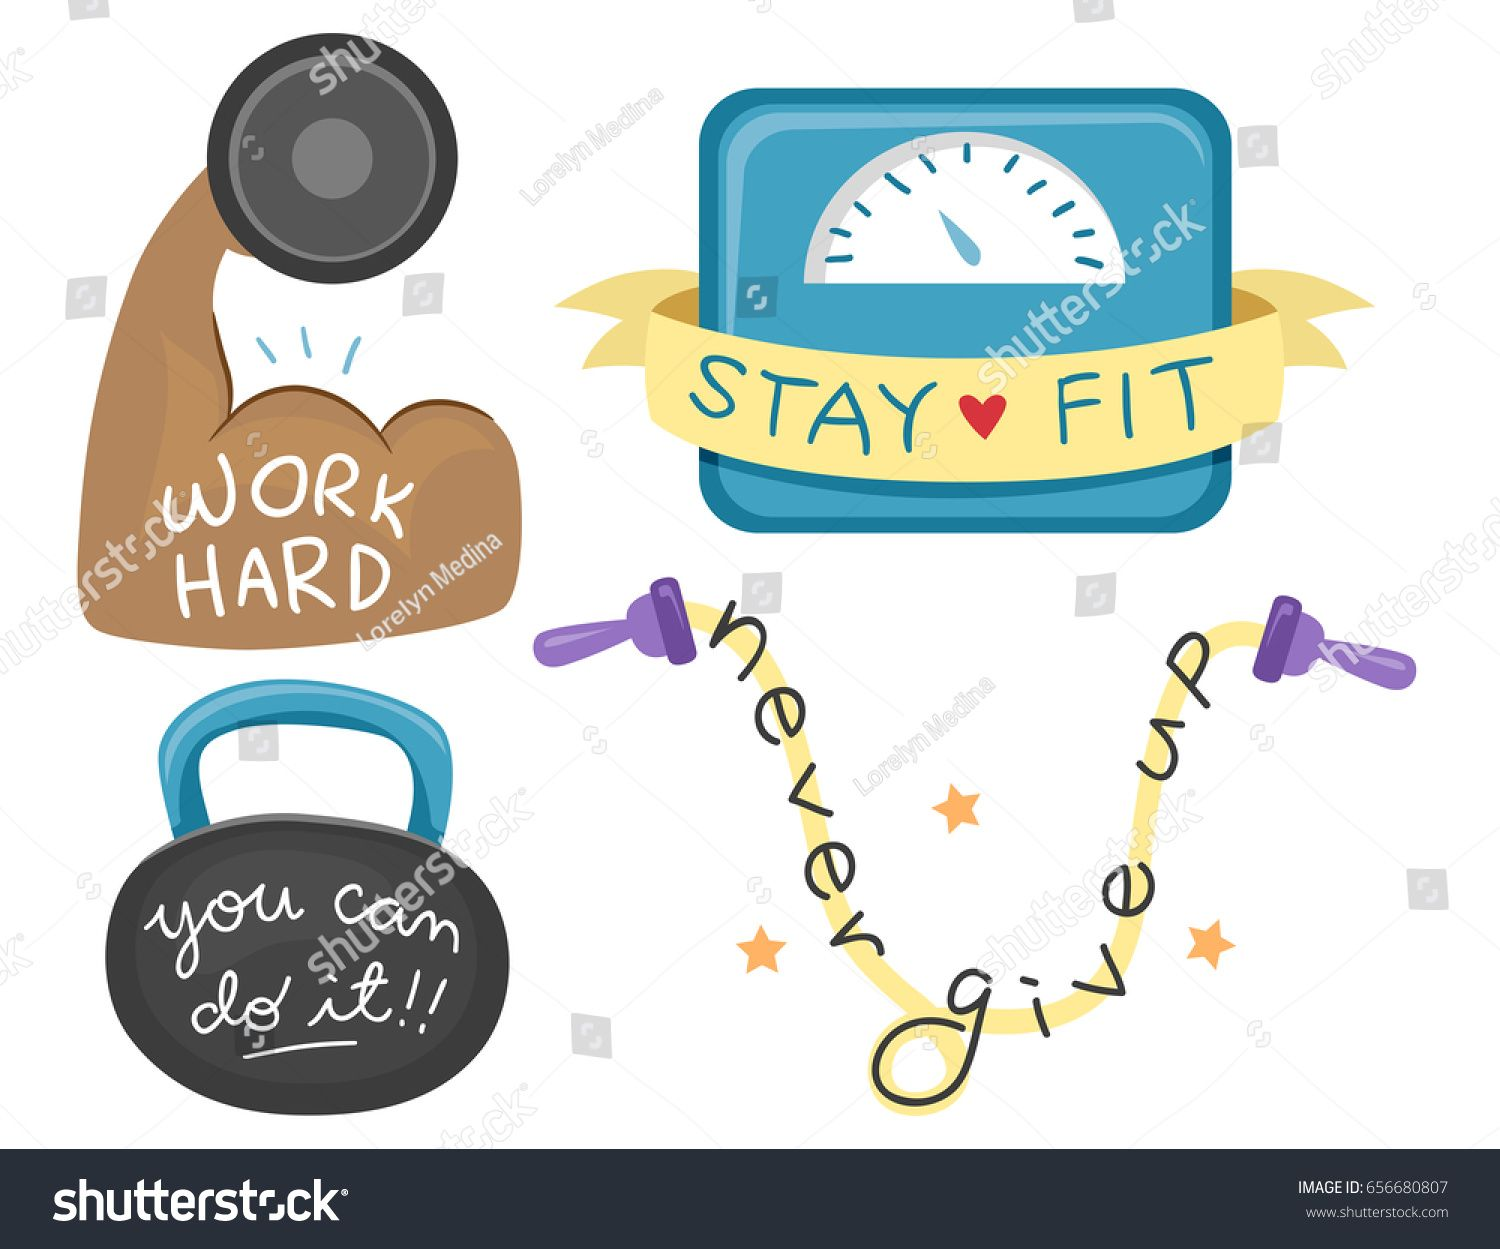 Illustration of Inspirational Texts for Exercising on Biceps, Scale, Kettlebell and Jump Rope #Ad , #ad, #Texts#Exercising#Illustration#Inspirational